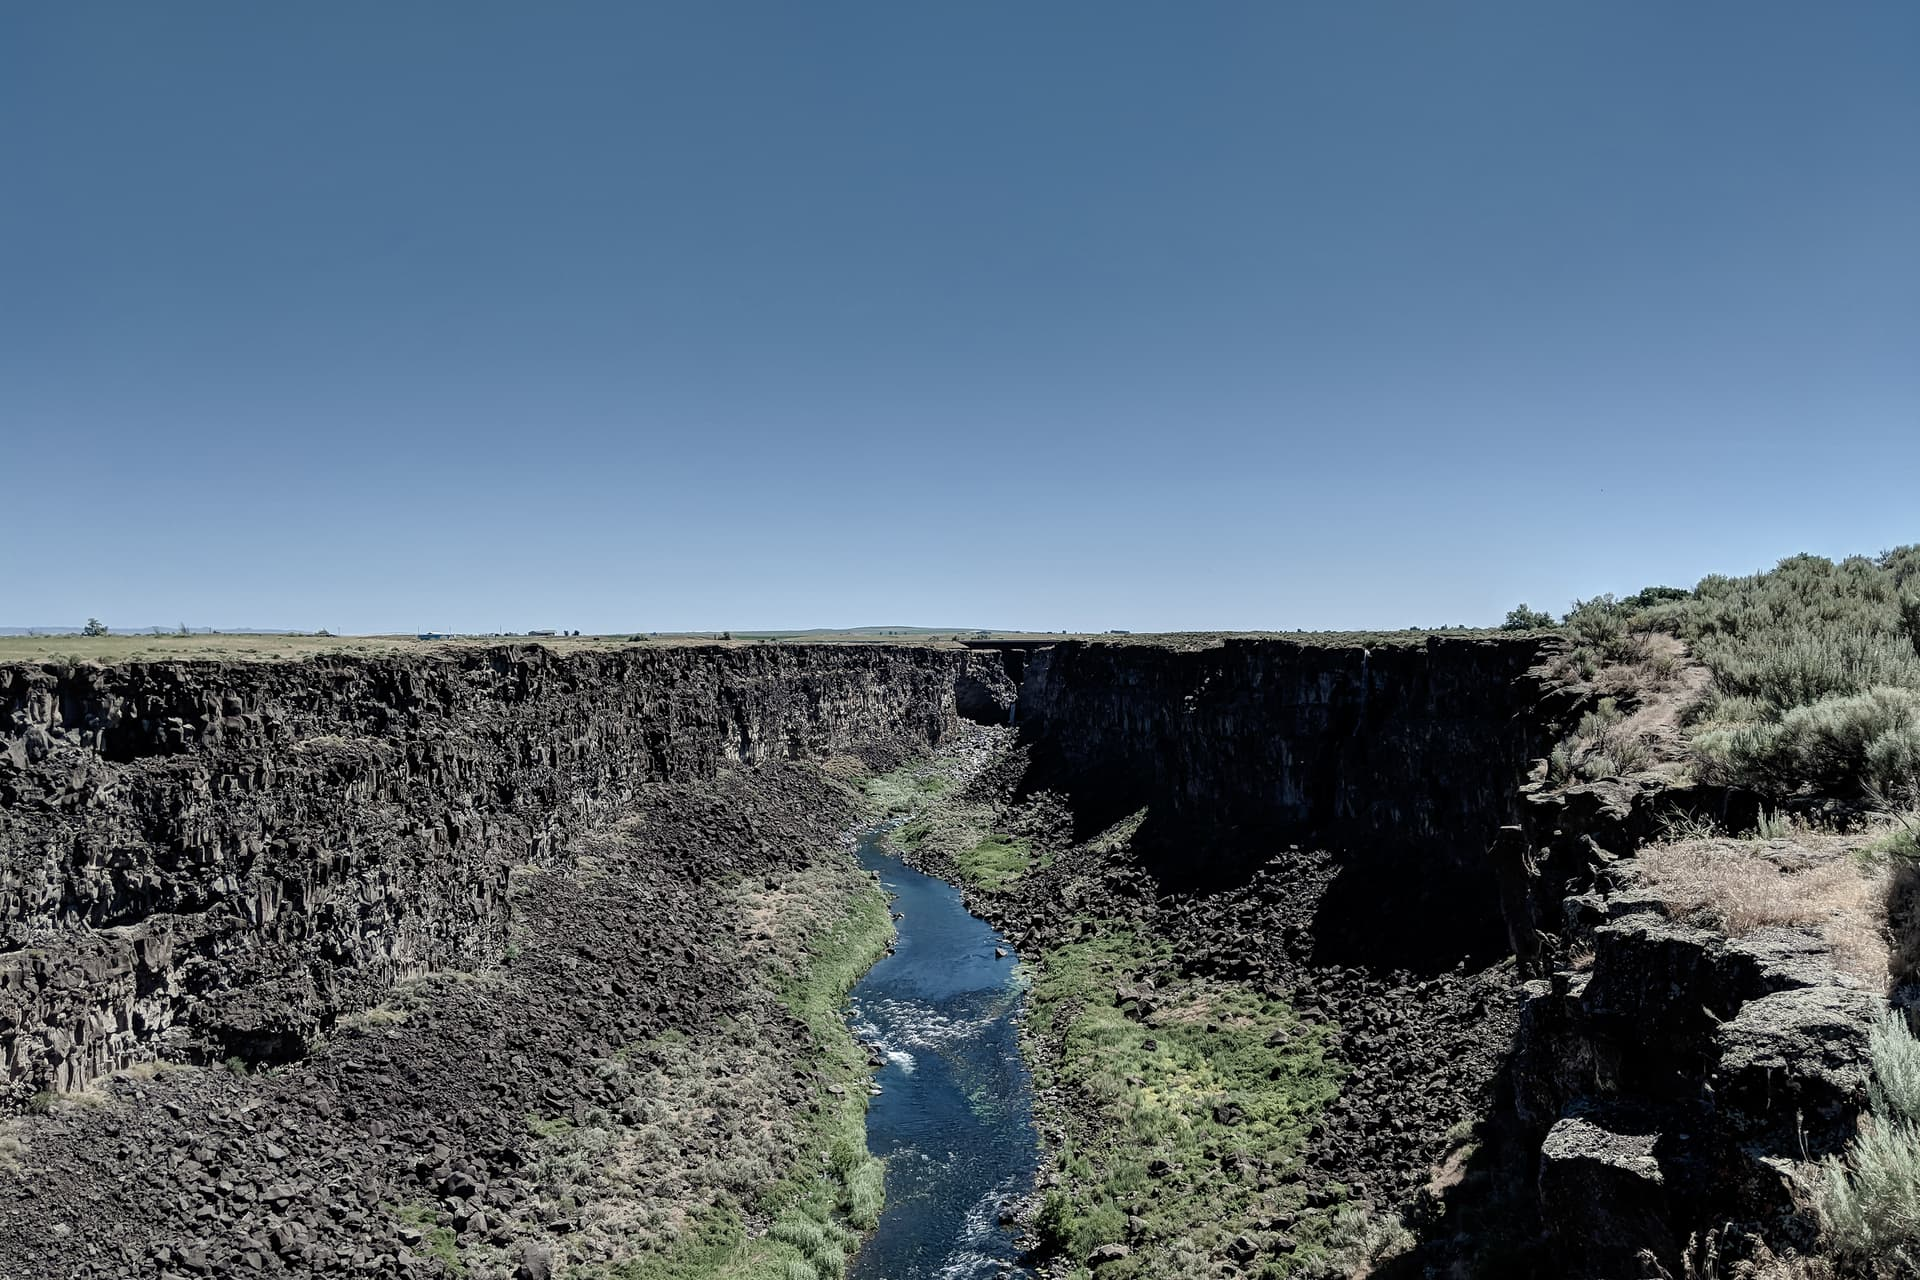 A river cuts a deep, sheer canyon through the basalt underlying otherwise empty desert scrubland. The canyon rim on the right is densely covered in sage, but the left rim is empty.